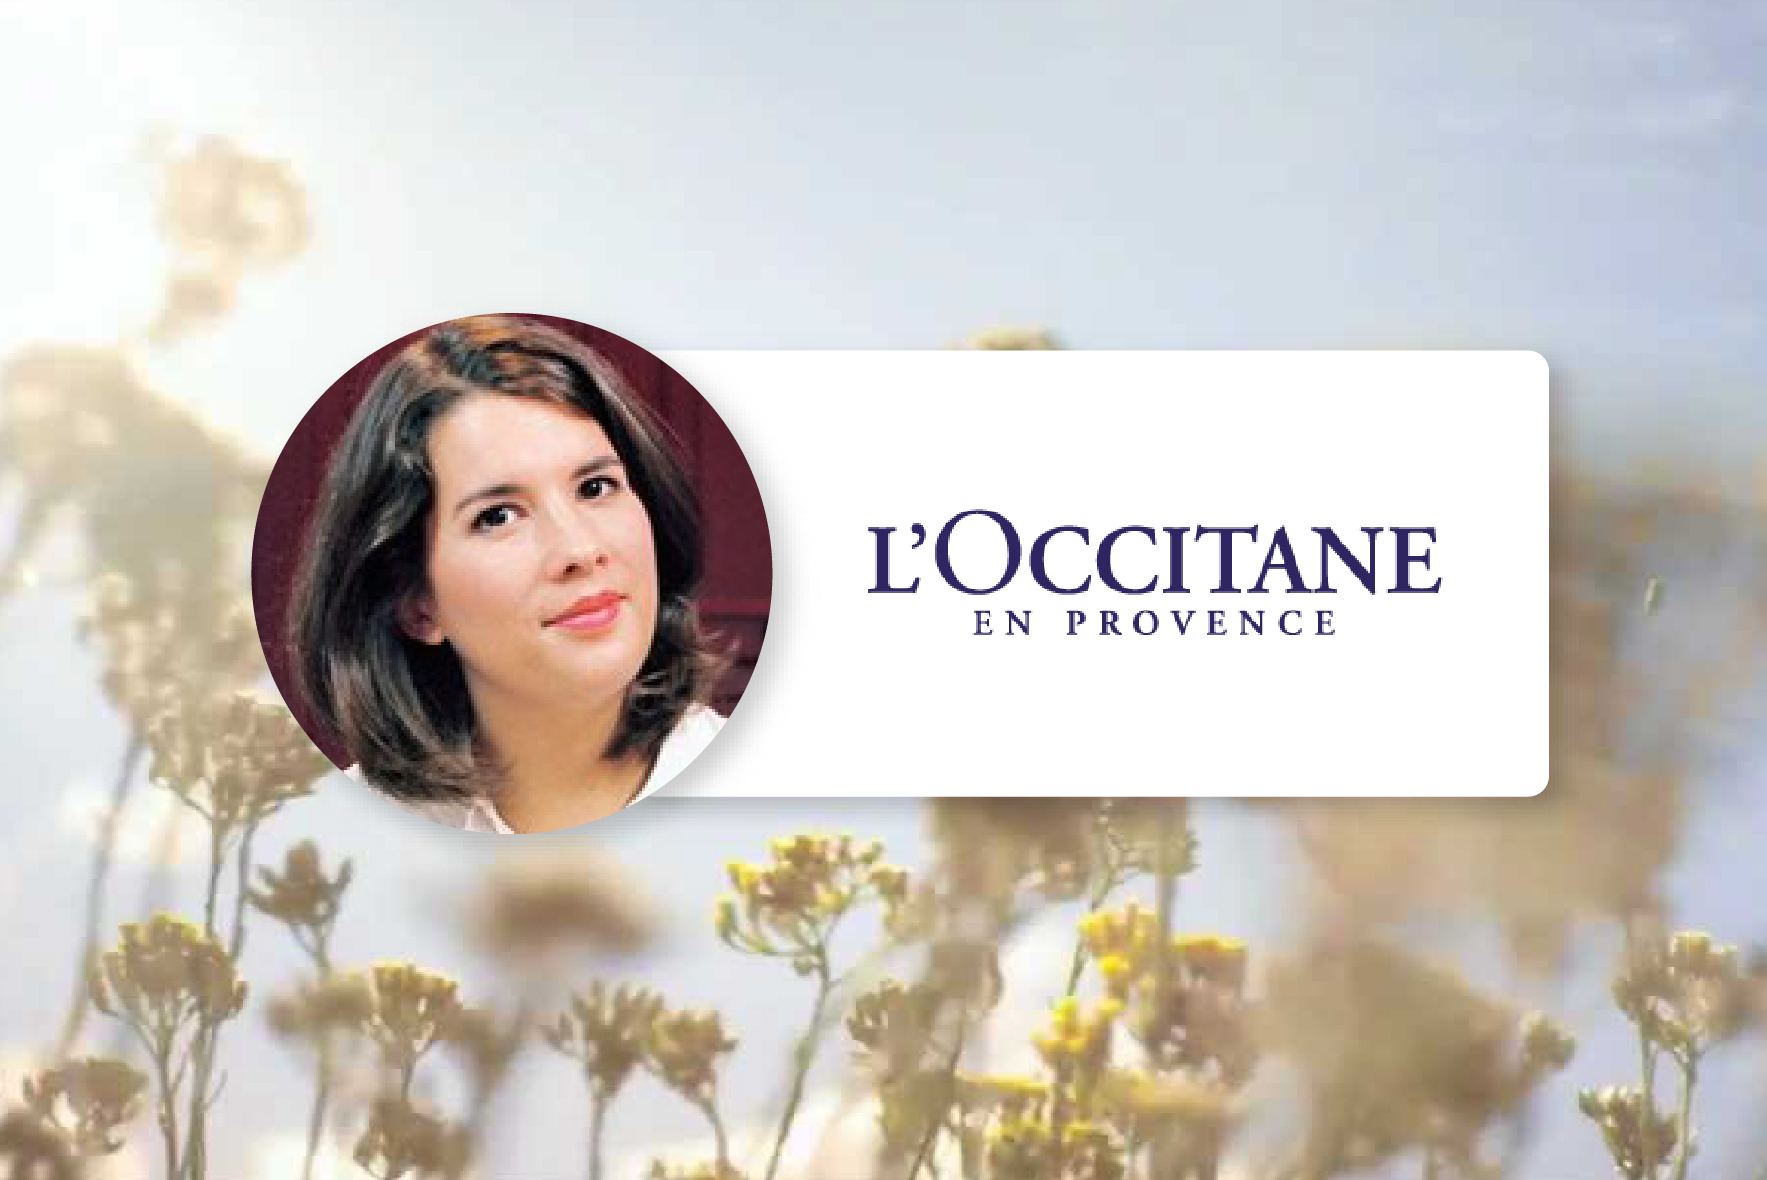 Anne-Sophie Pouyau, Head of International and European Customer Service chez L'Occitane en Provence